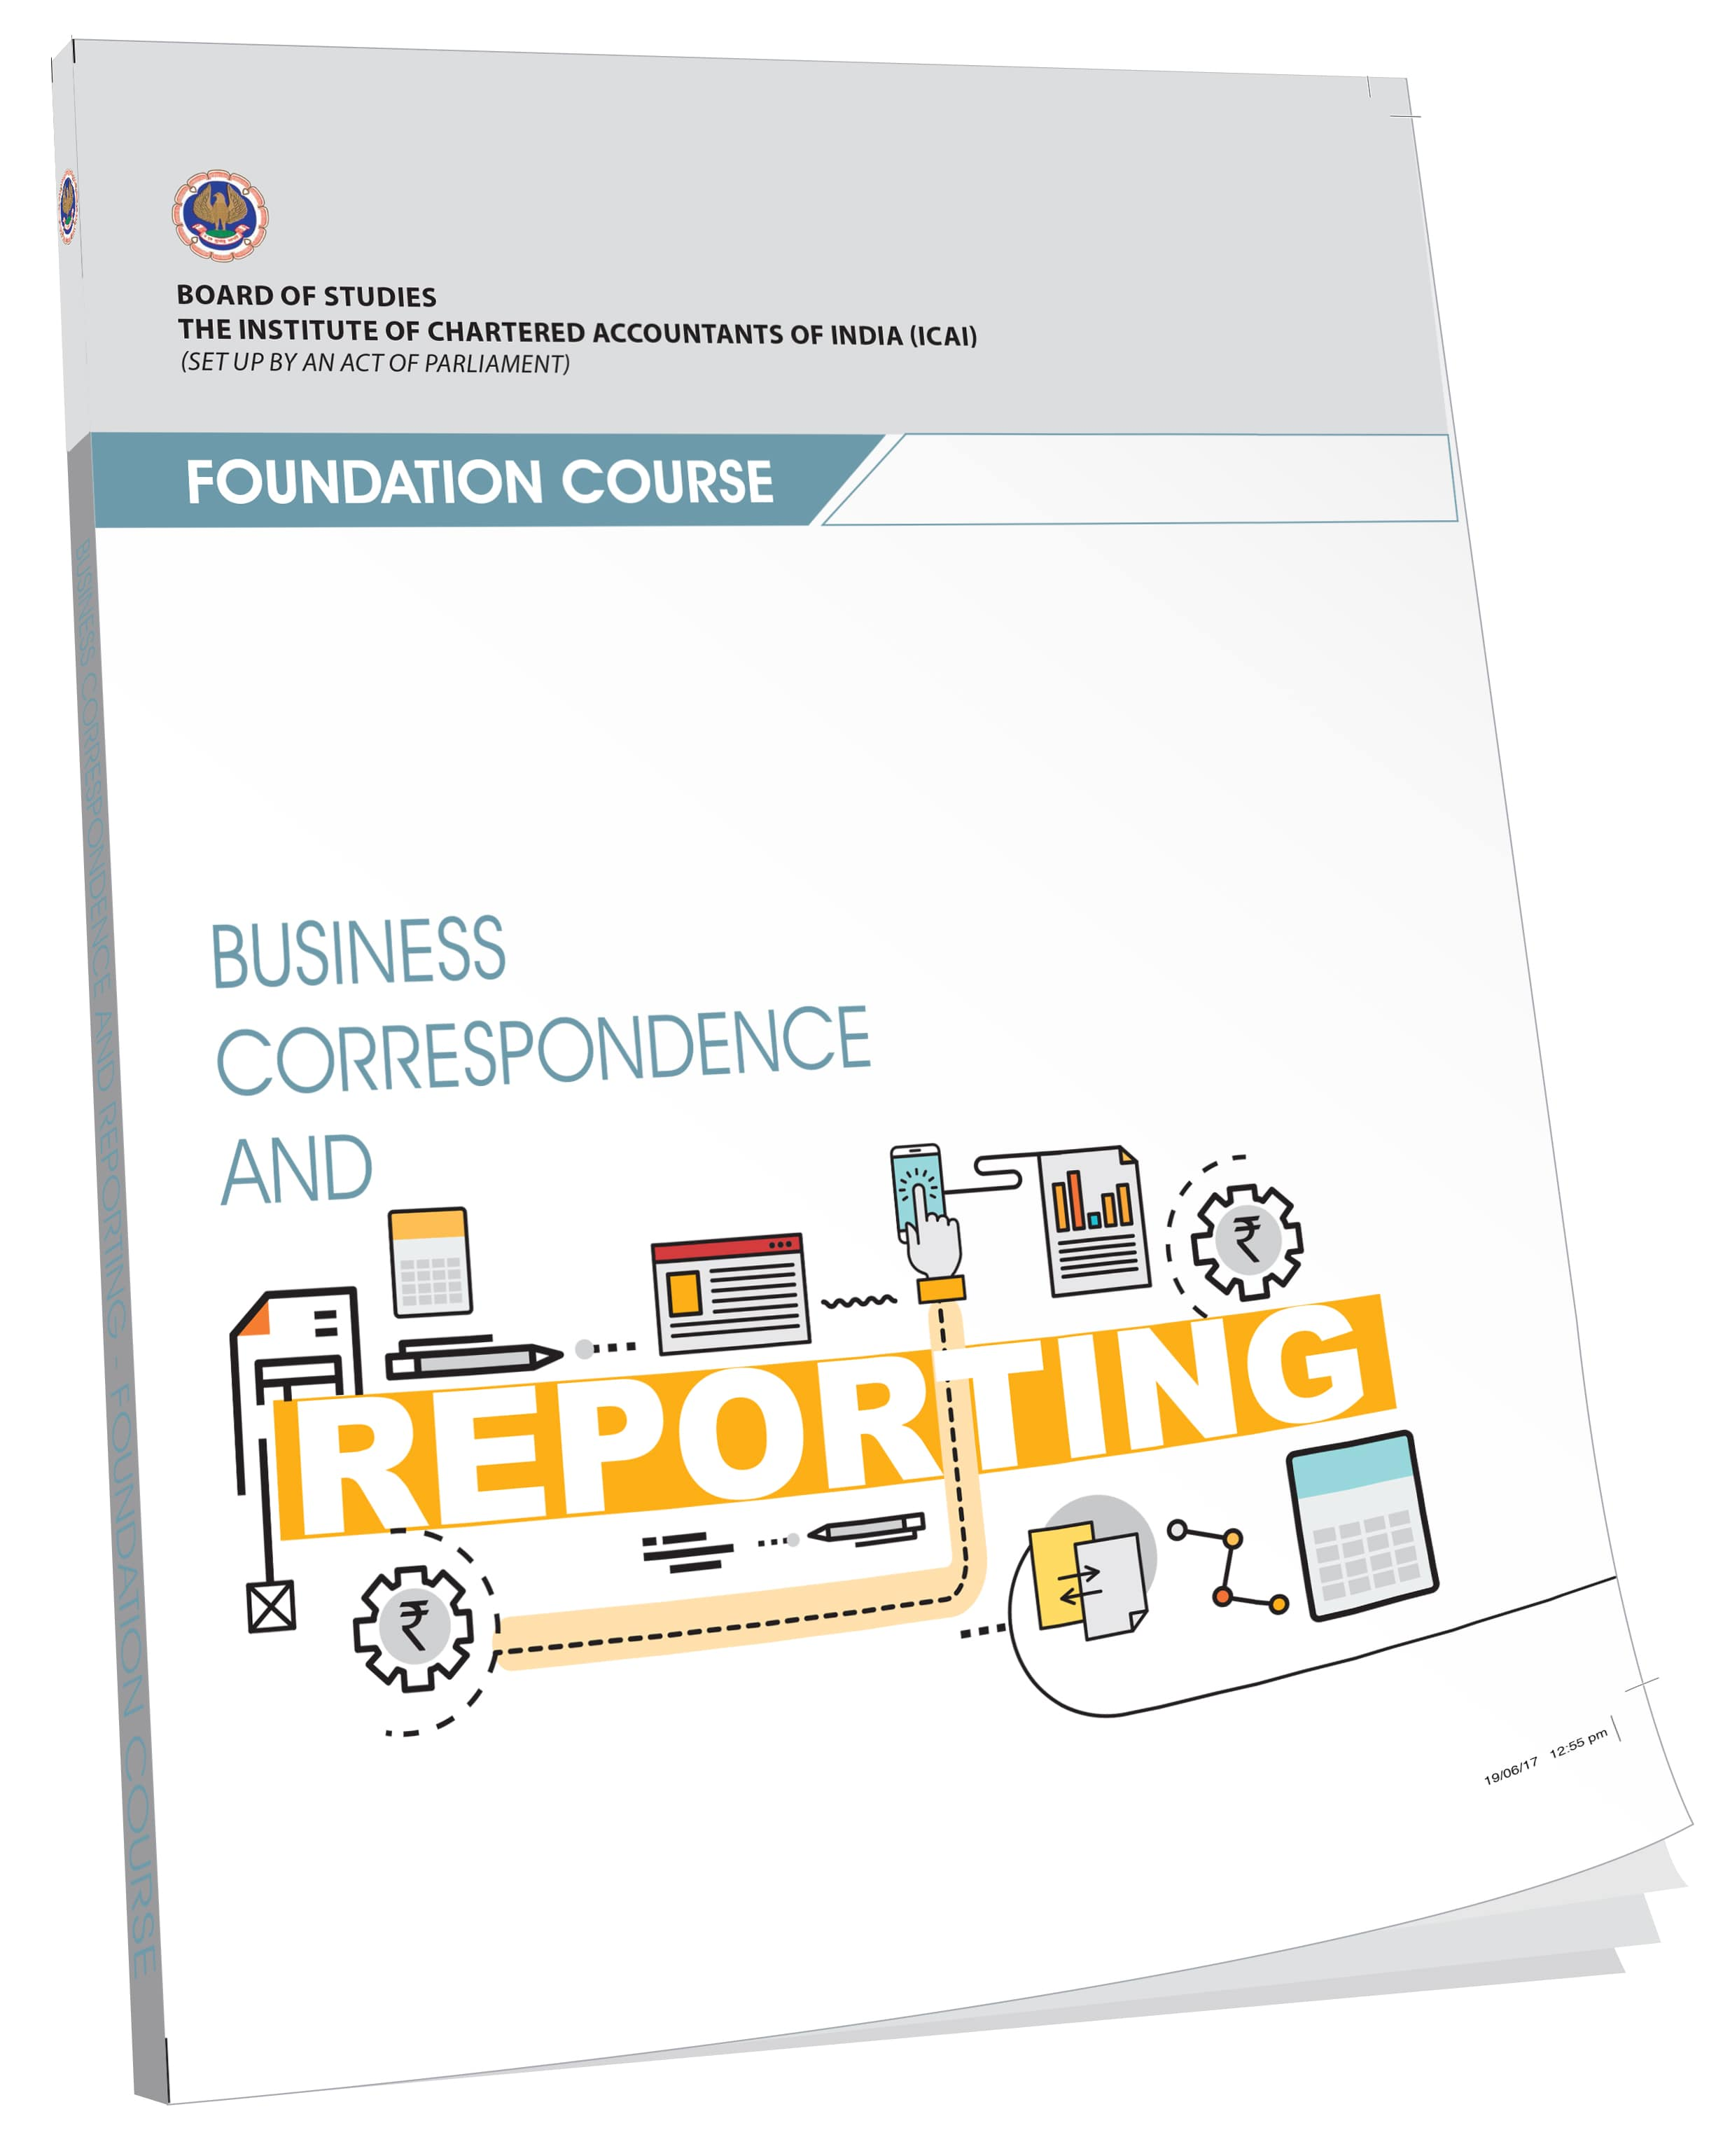 Business Correspondence and Reporting (English), July, 2017